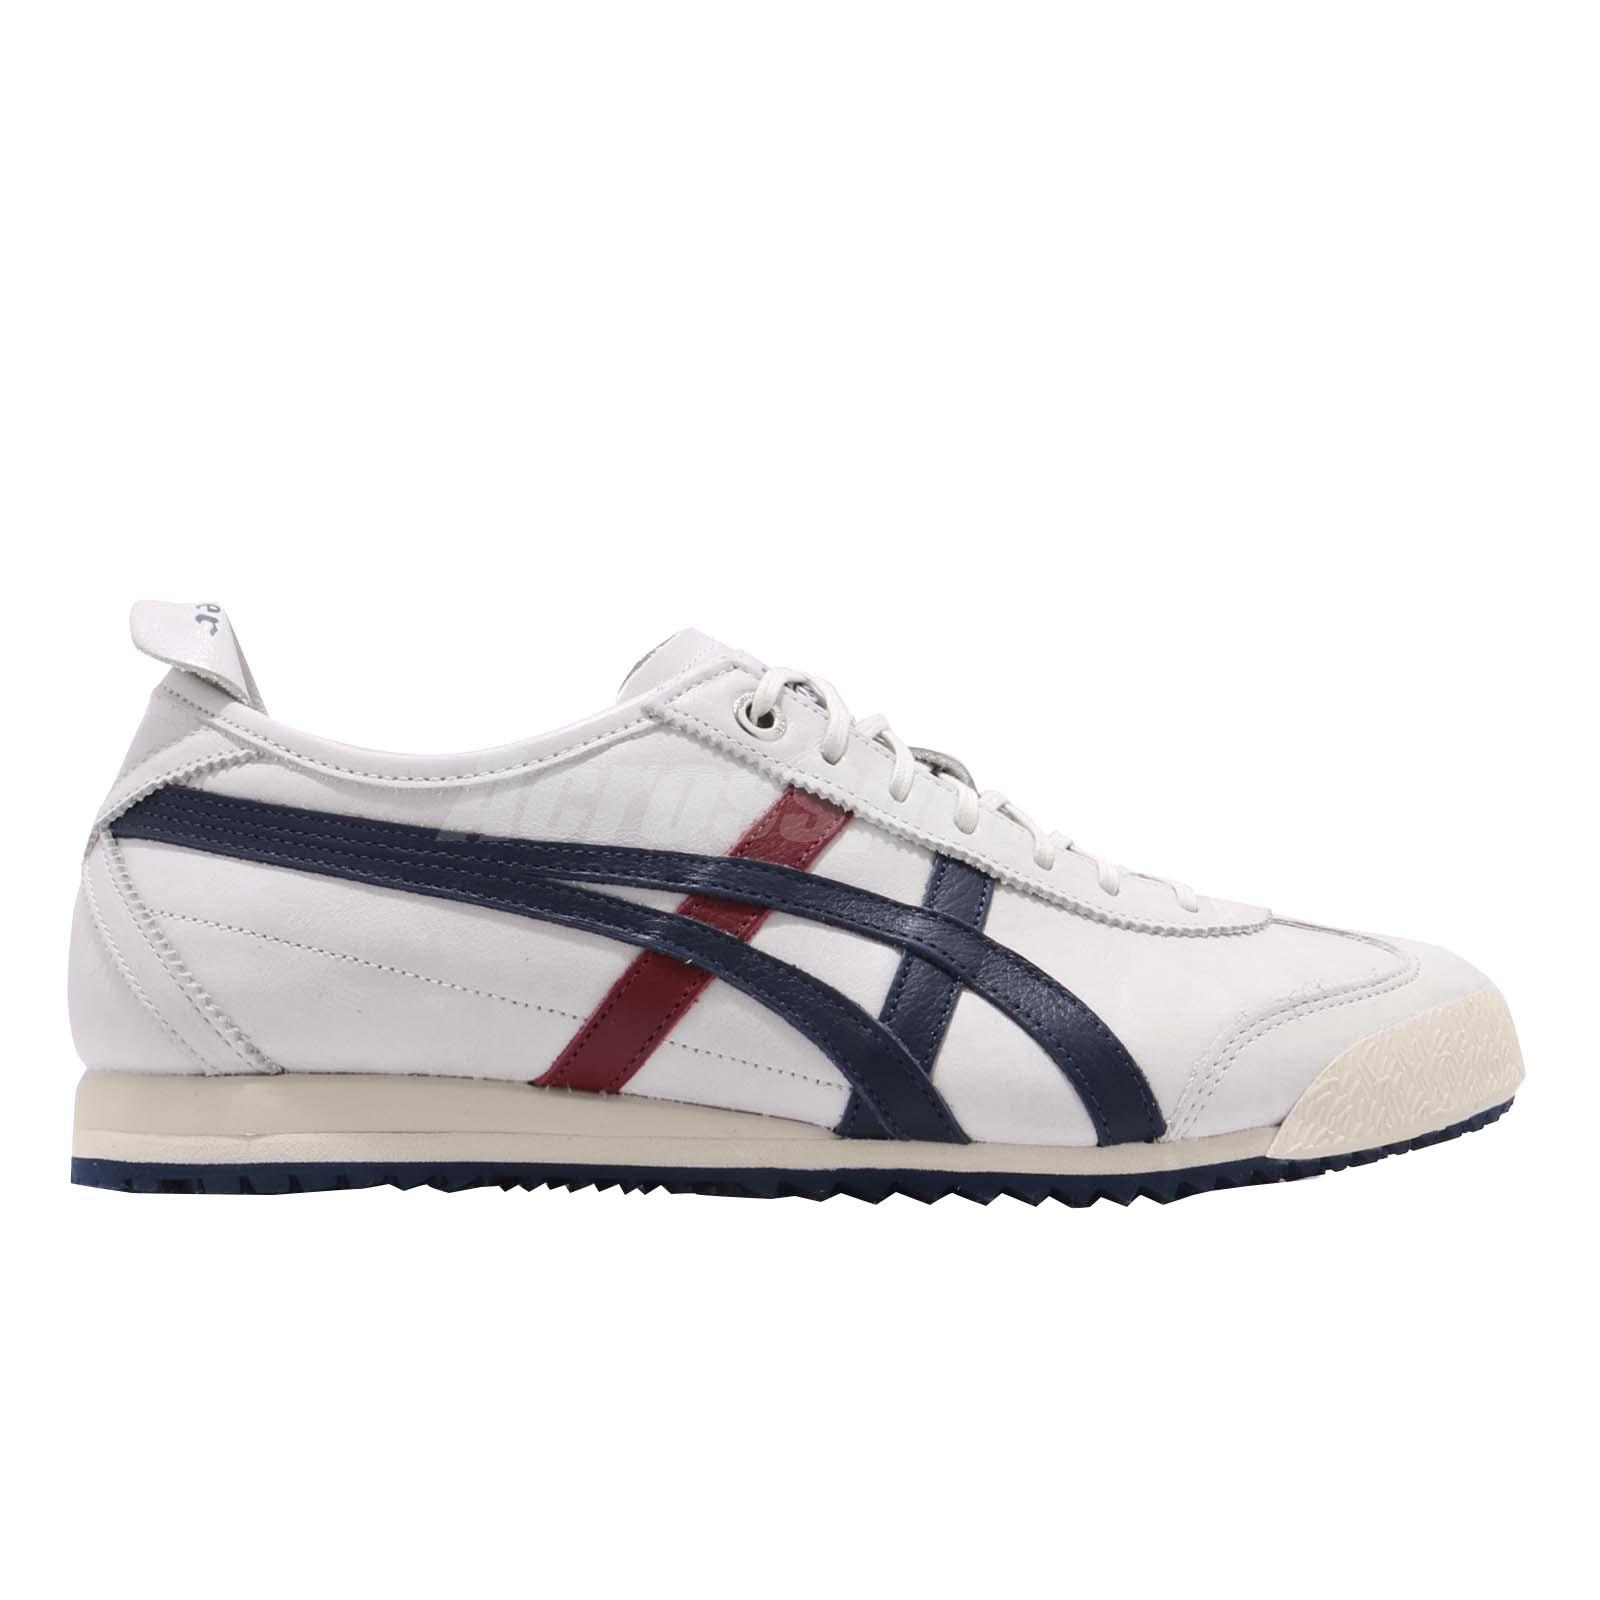 Chaussures Mexico Hommes 2014 Bleu Asics 66 Tiger Blanc